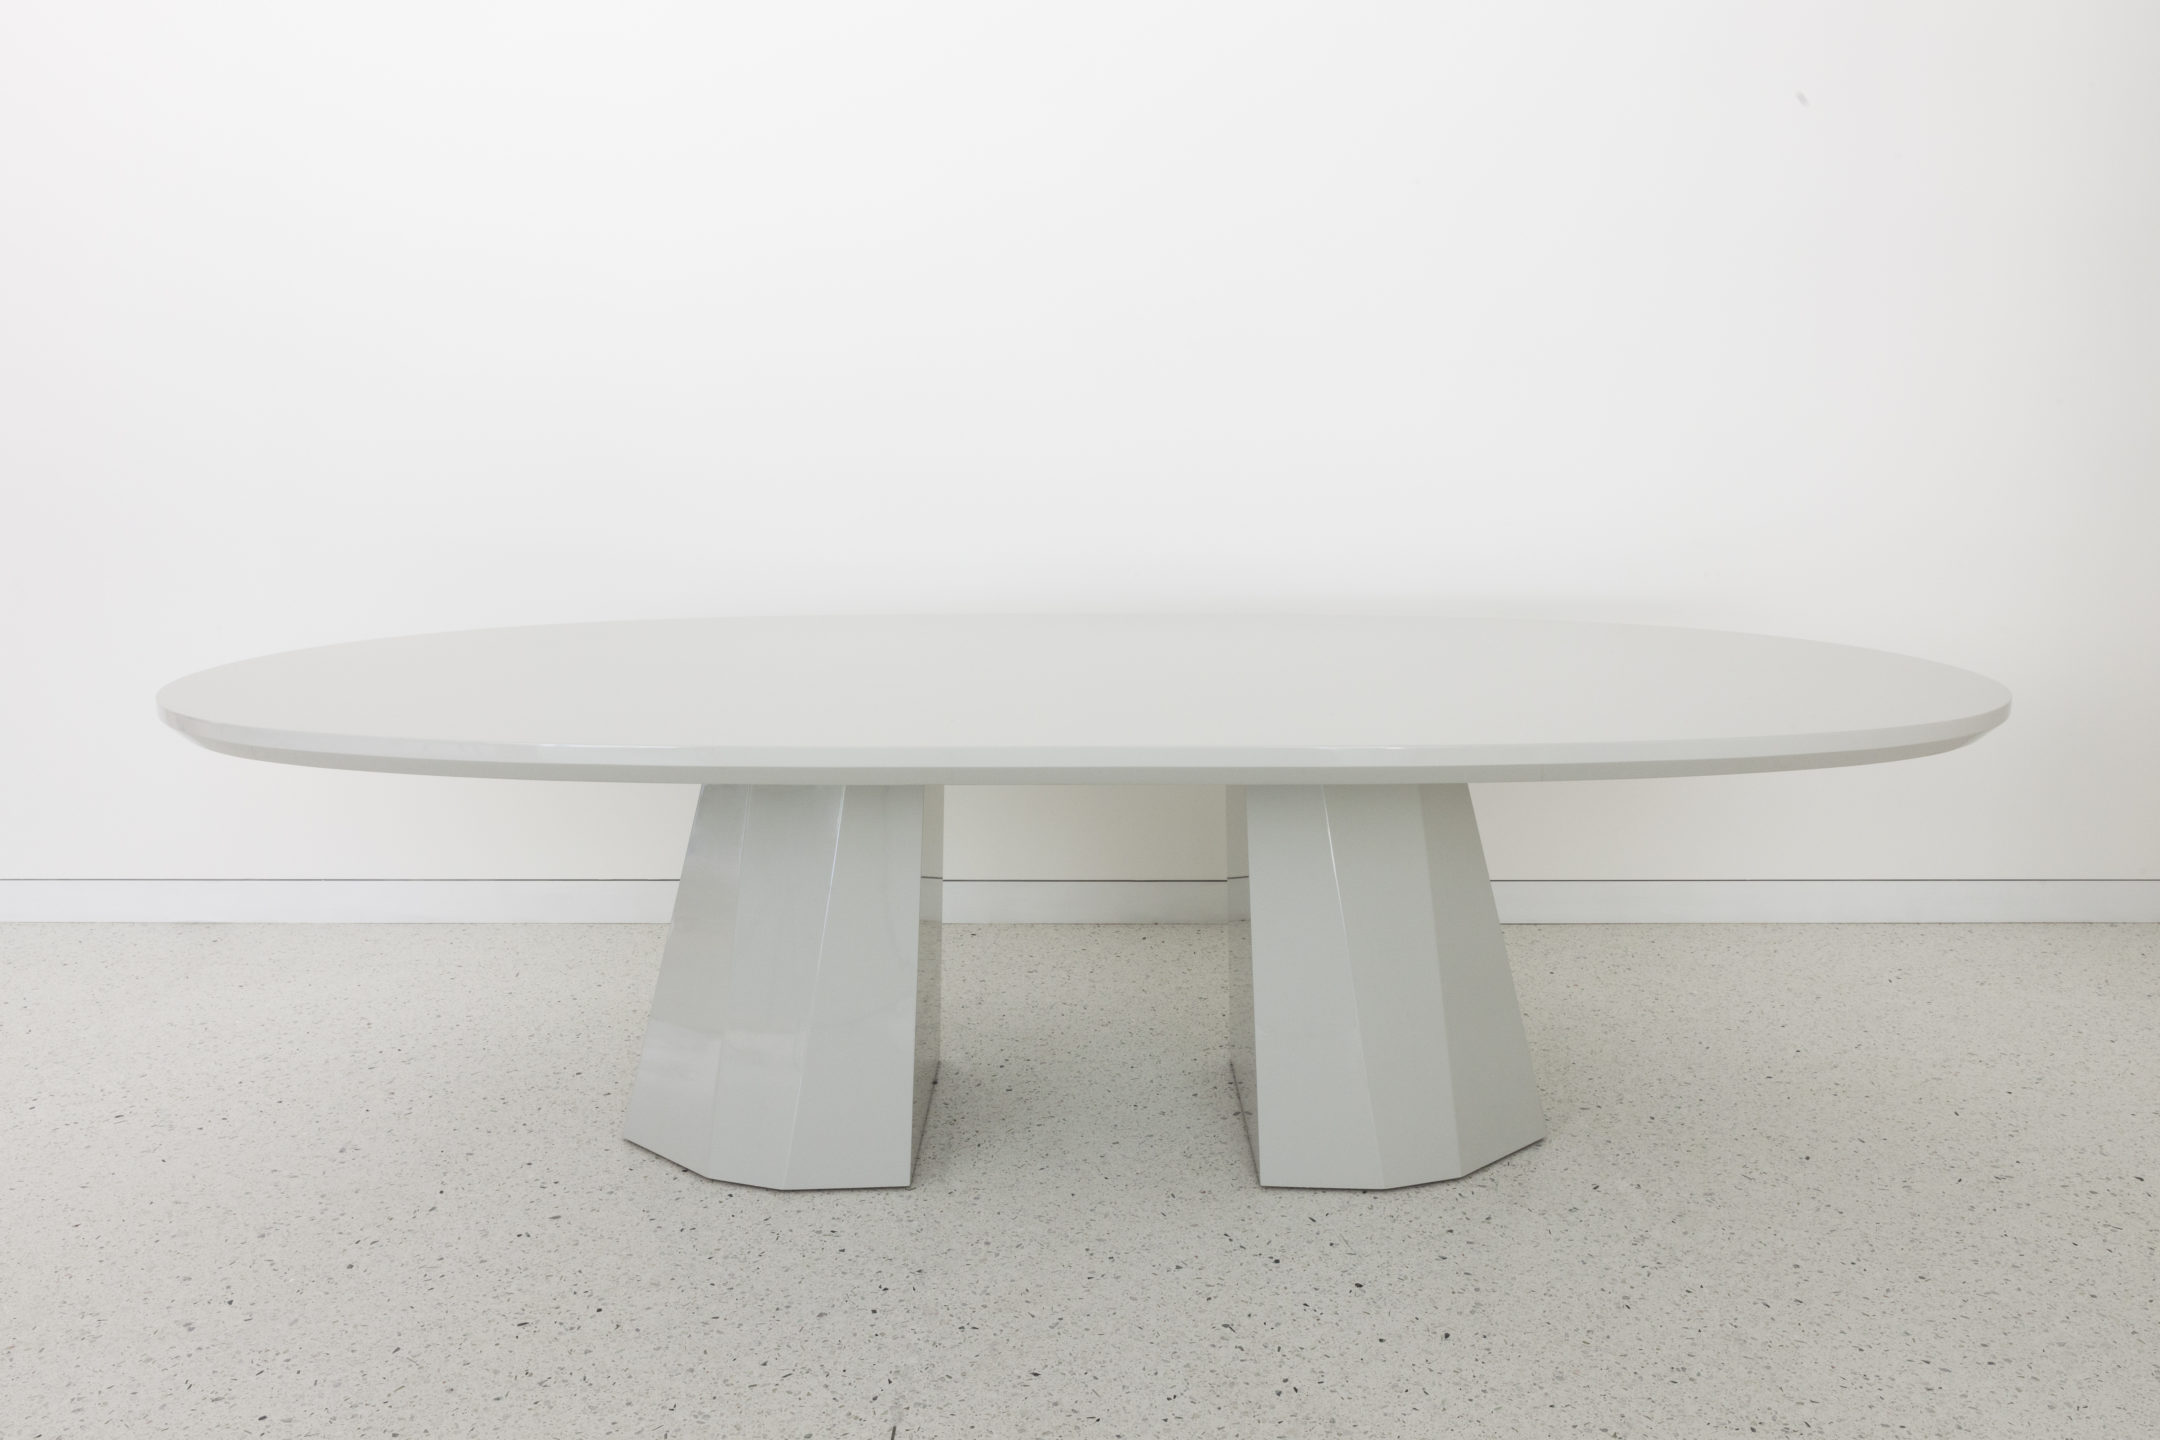 Studio_William_Hefner_products_Gable_dining_table_Donze_Breakfast Nook_Table_03-Edit